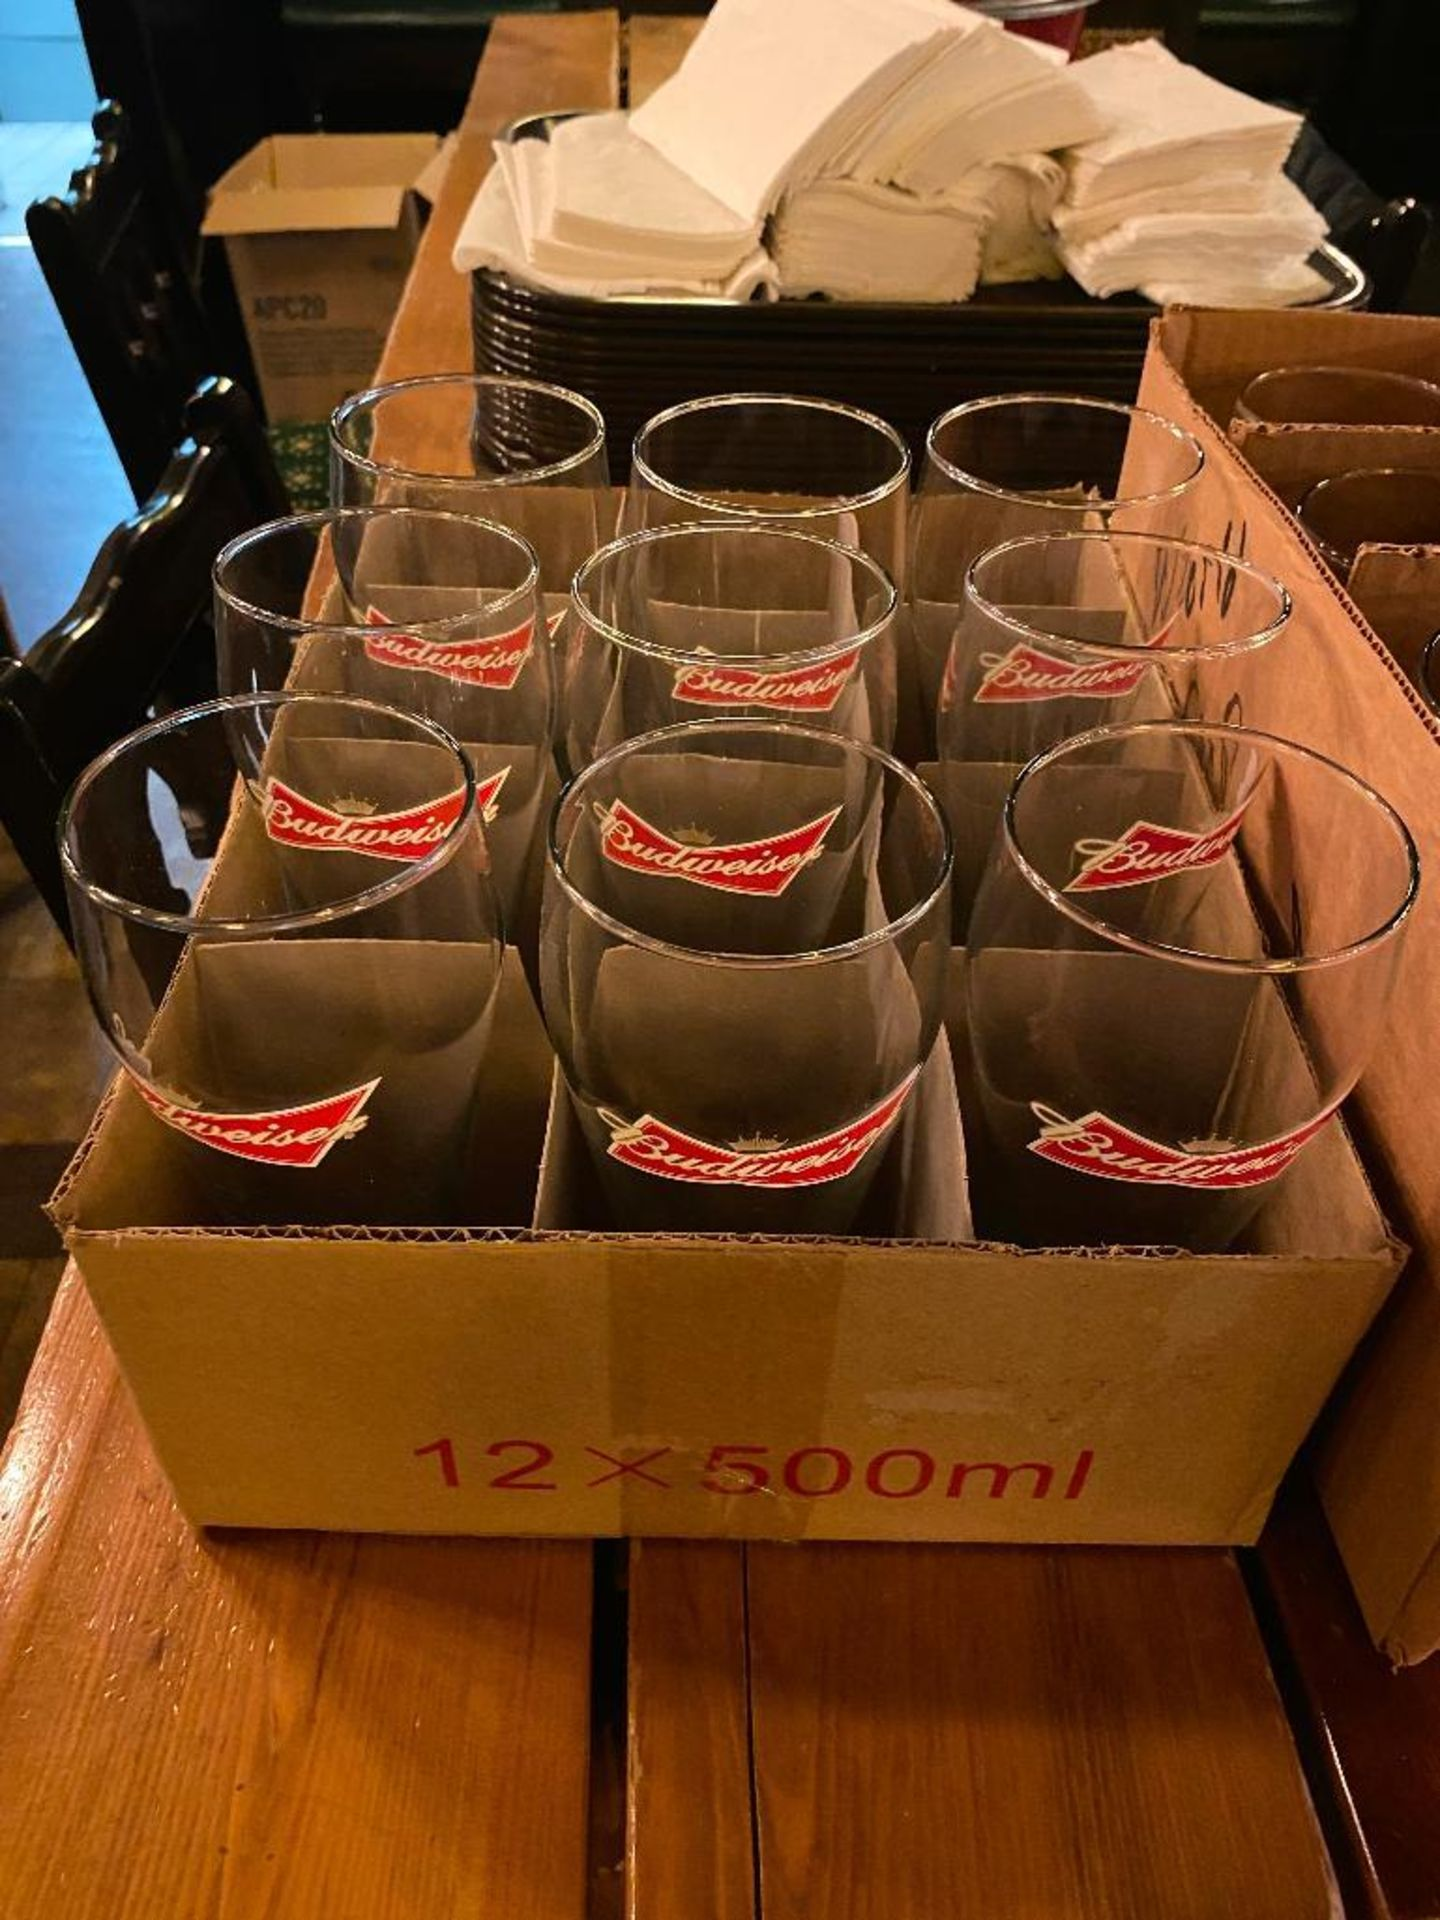 LOT OF (2) BOXES OF BUDWEISER BEER GLASSES - Image 3 of 3